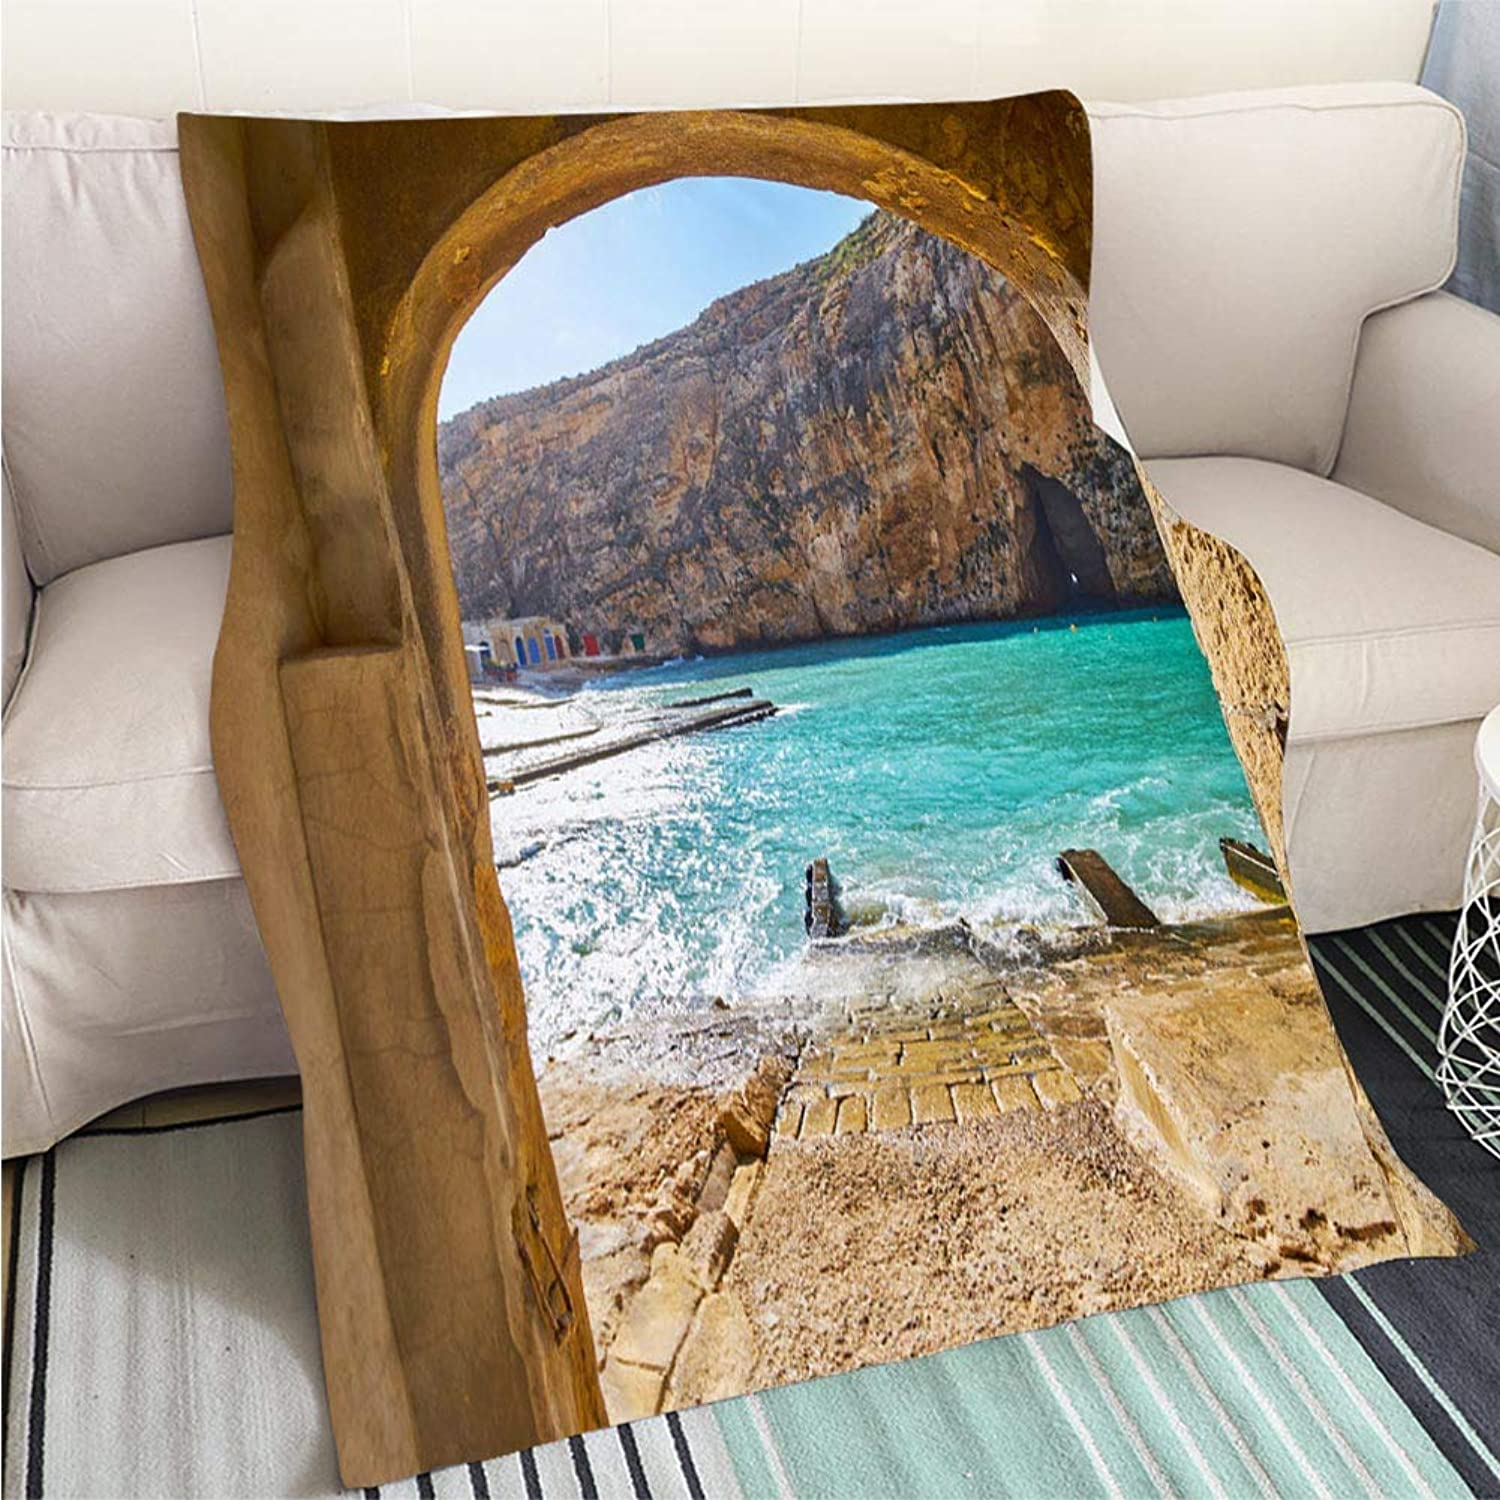 Creative Flannel Printed Blanket for Warm Bedroom Dwejra Inland Sea Through The Arch San Lawrenz Gozo Malta Perfect for Couch Sofa or Bed Cool Quilt